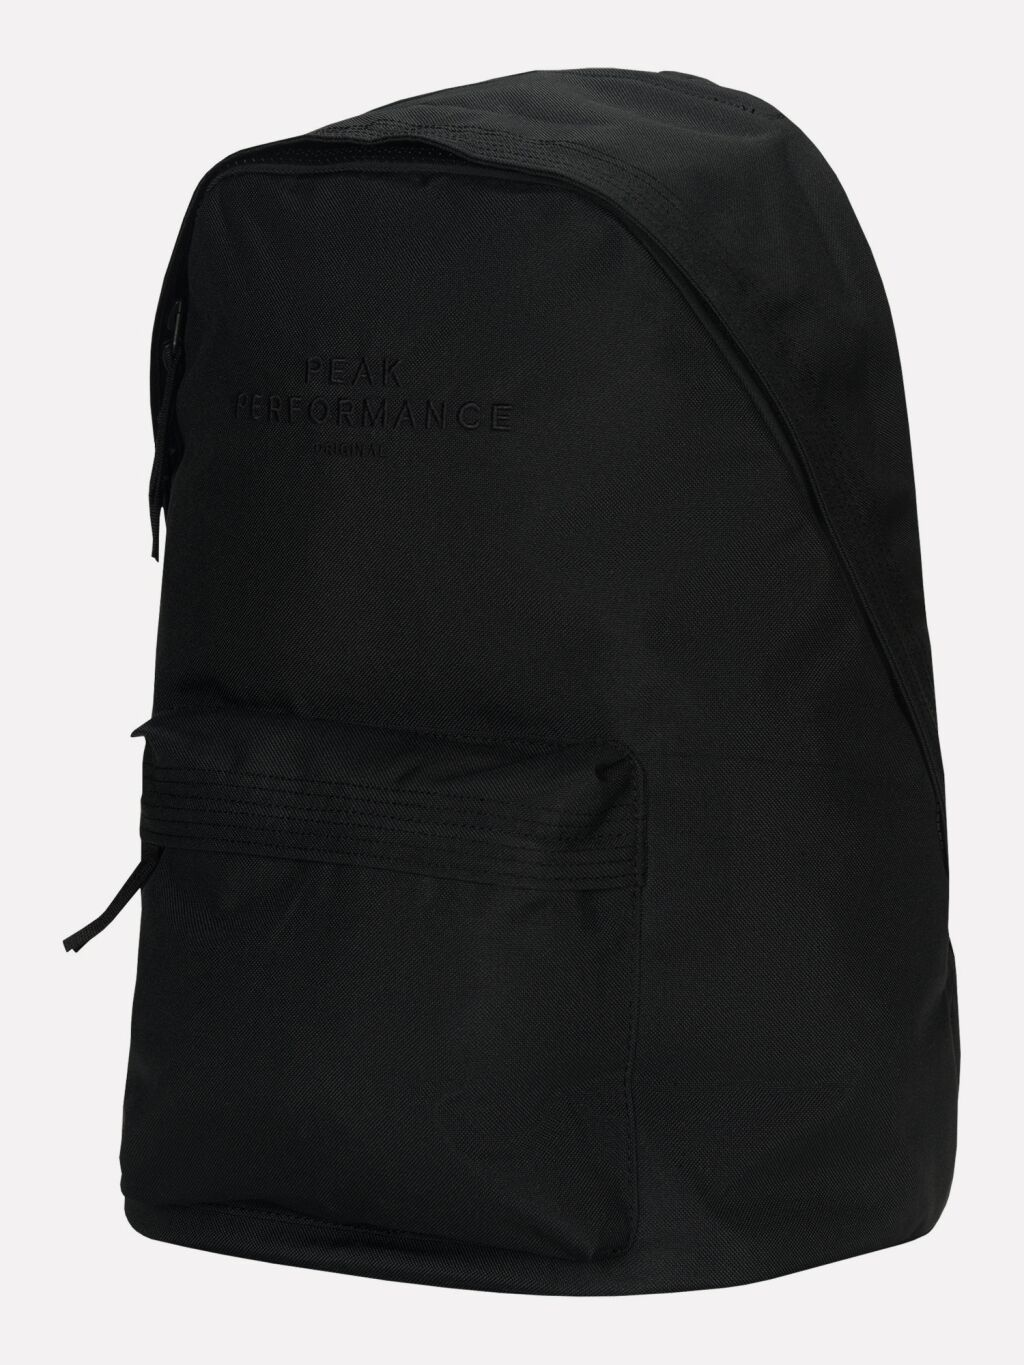 Peak Performance Original Backpack